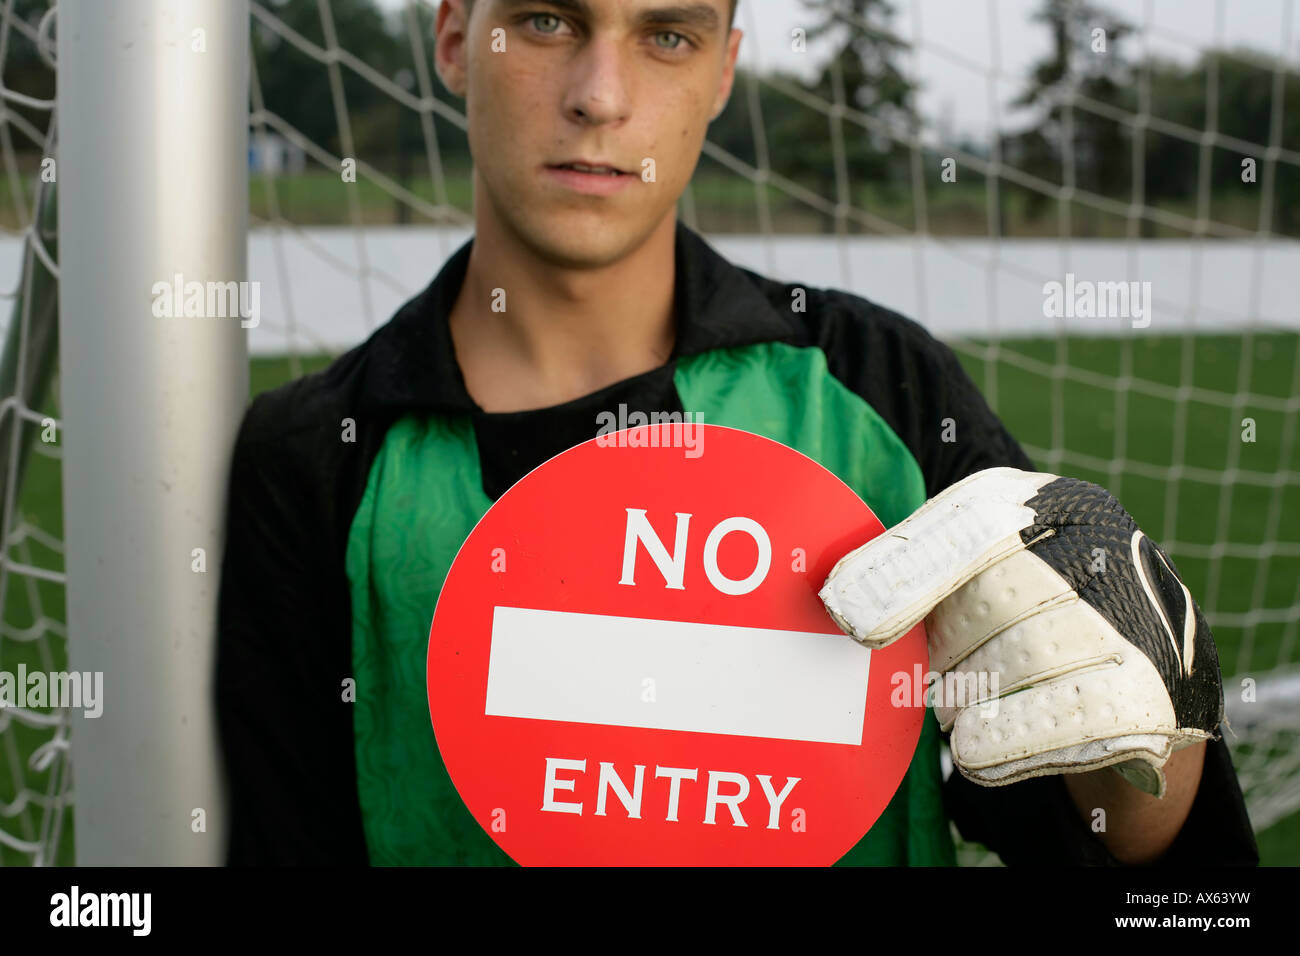 Goalkeeper showing label 'no entry' at camera - Stock Image